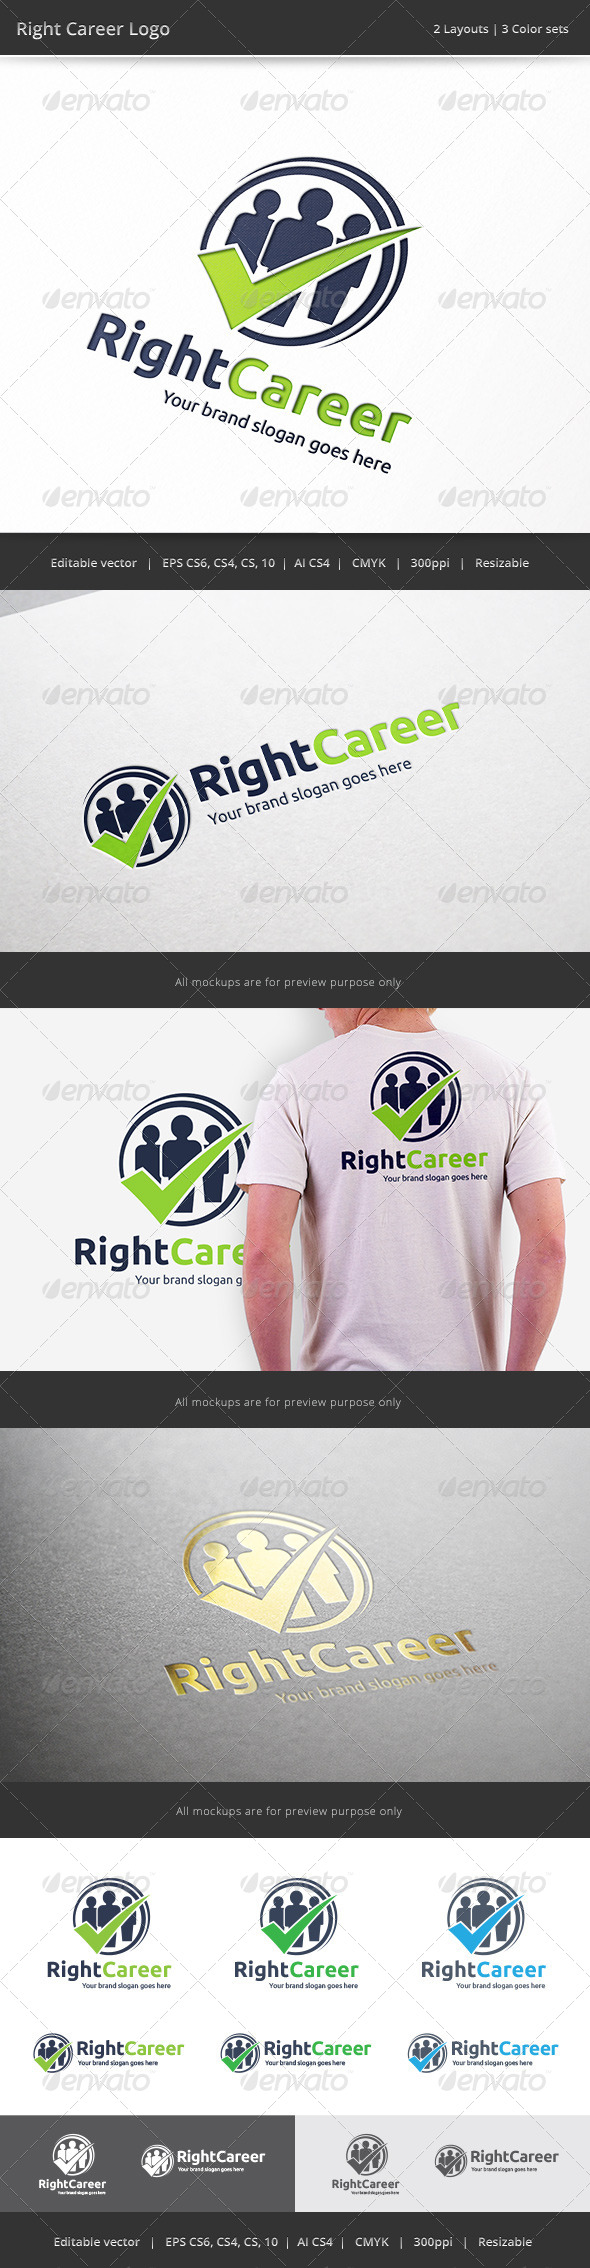 GraphicRiver Right Career Job Logo 7574779